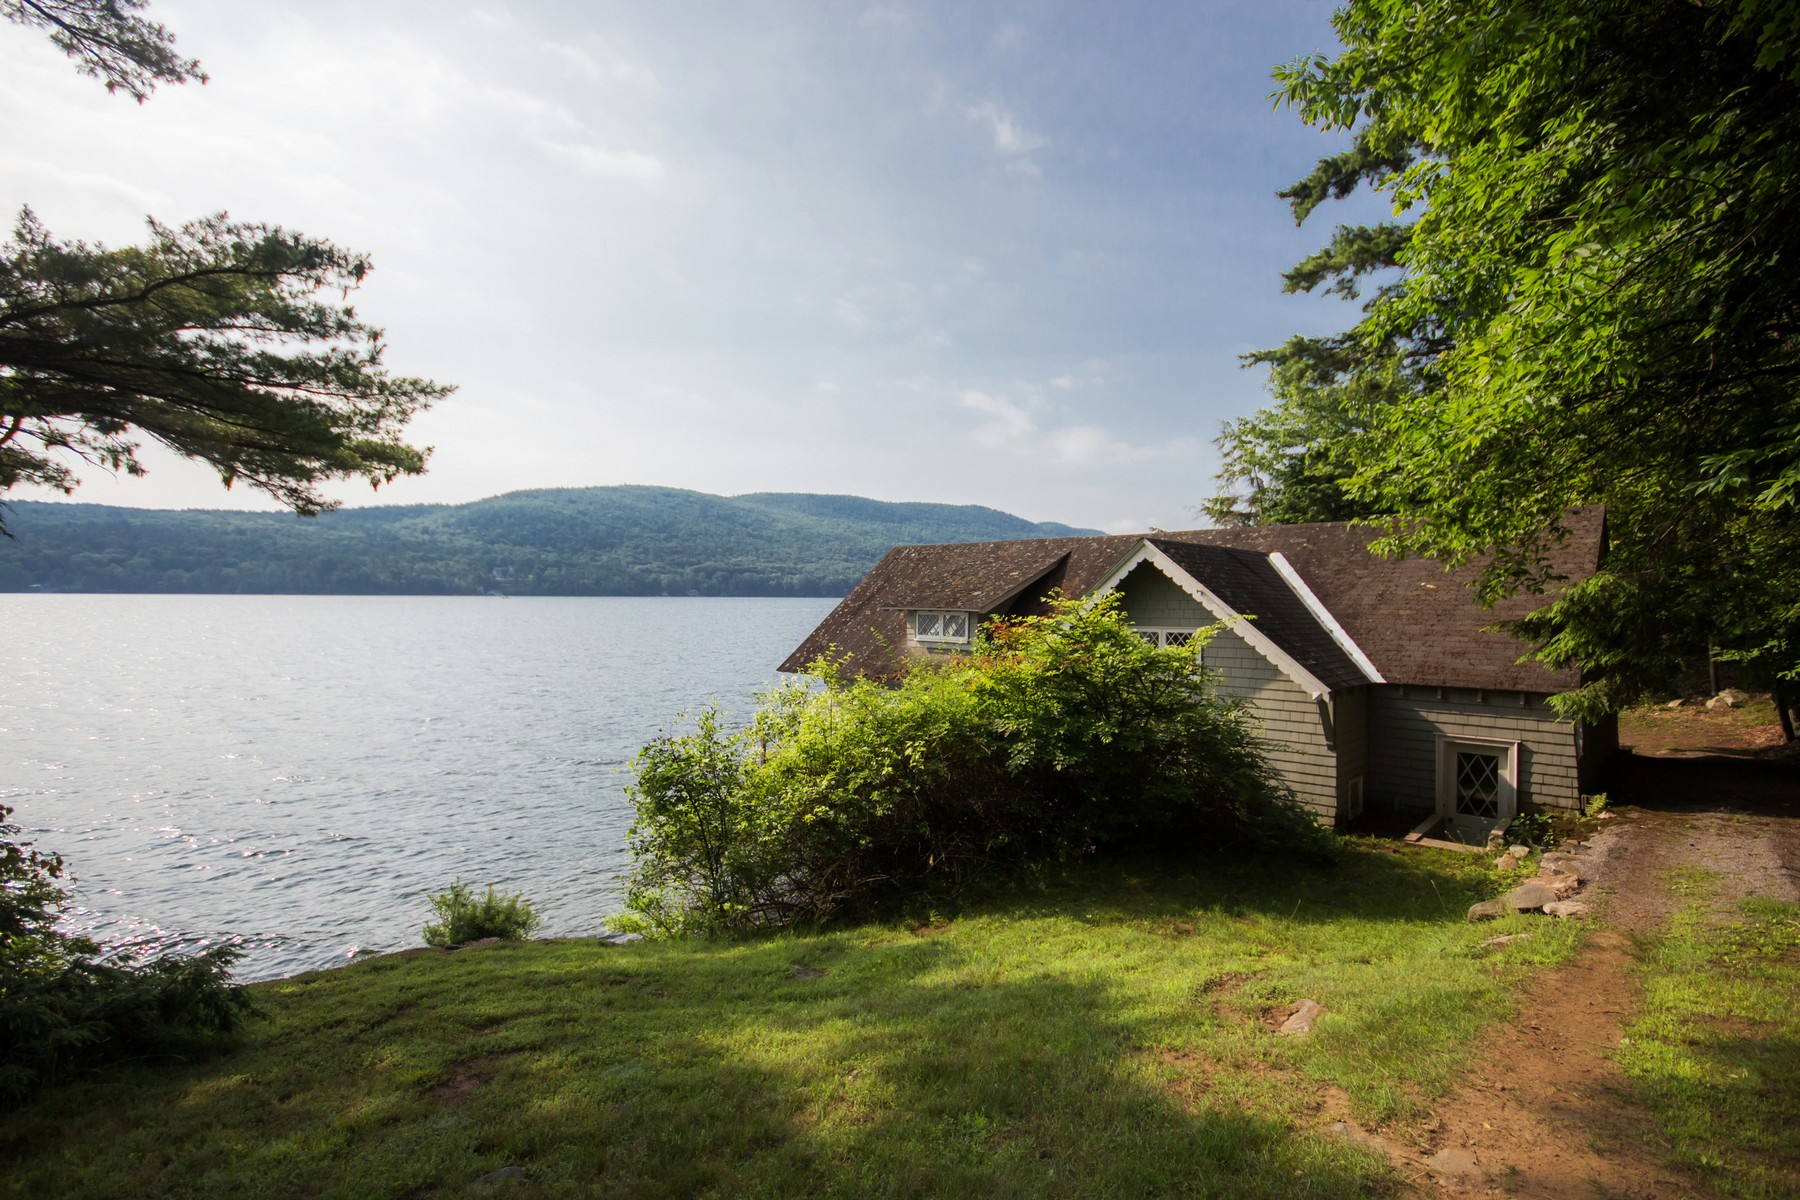 Casa Unifamiliar por un Alquiler en Lake George Waterfront Rental 30 Ahnohwarah Rd. Lake George, Nueva York 12845 Estados Unidos